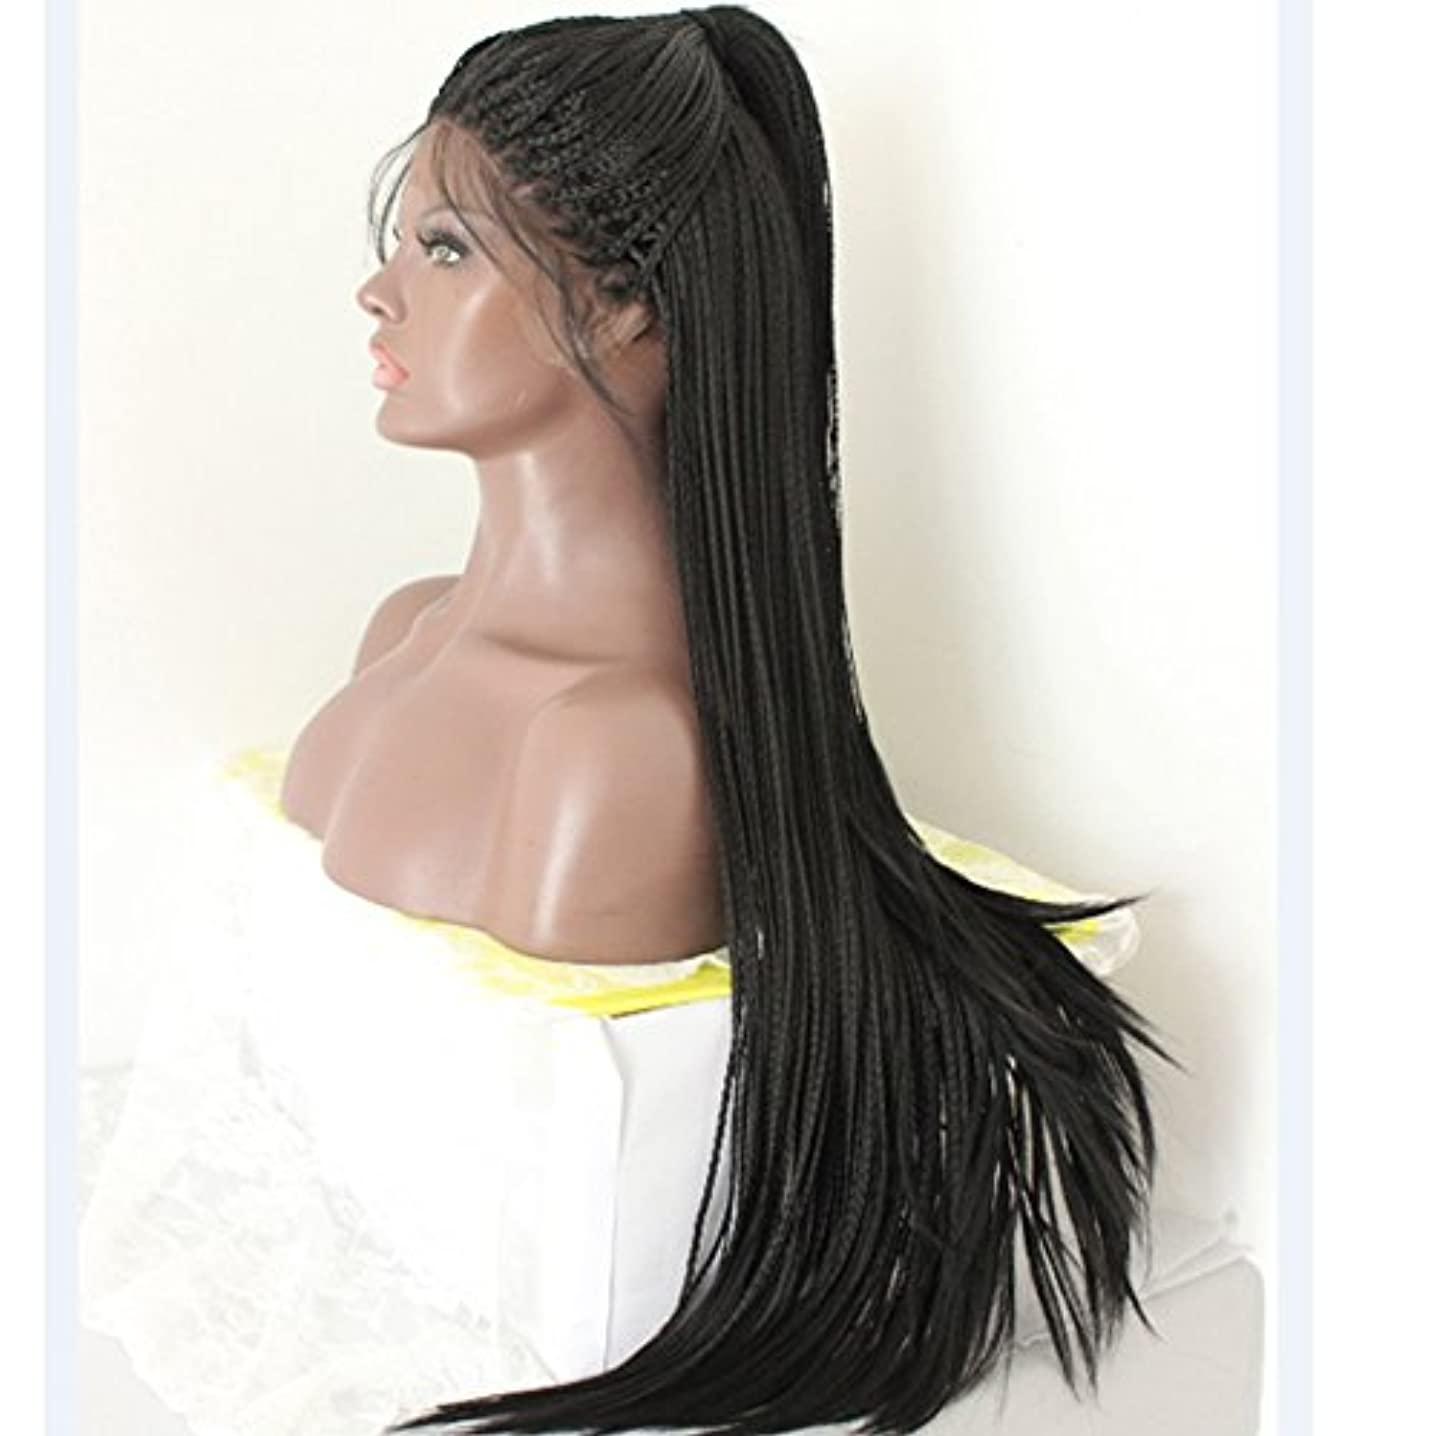 PlatinumHair long black braids with baby hair synthetic lace front wigs heat resistant synthetic wigs 26